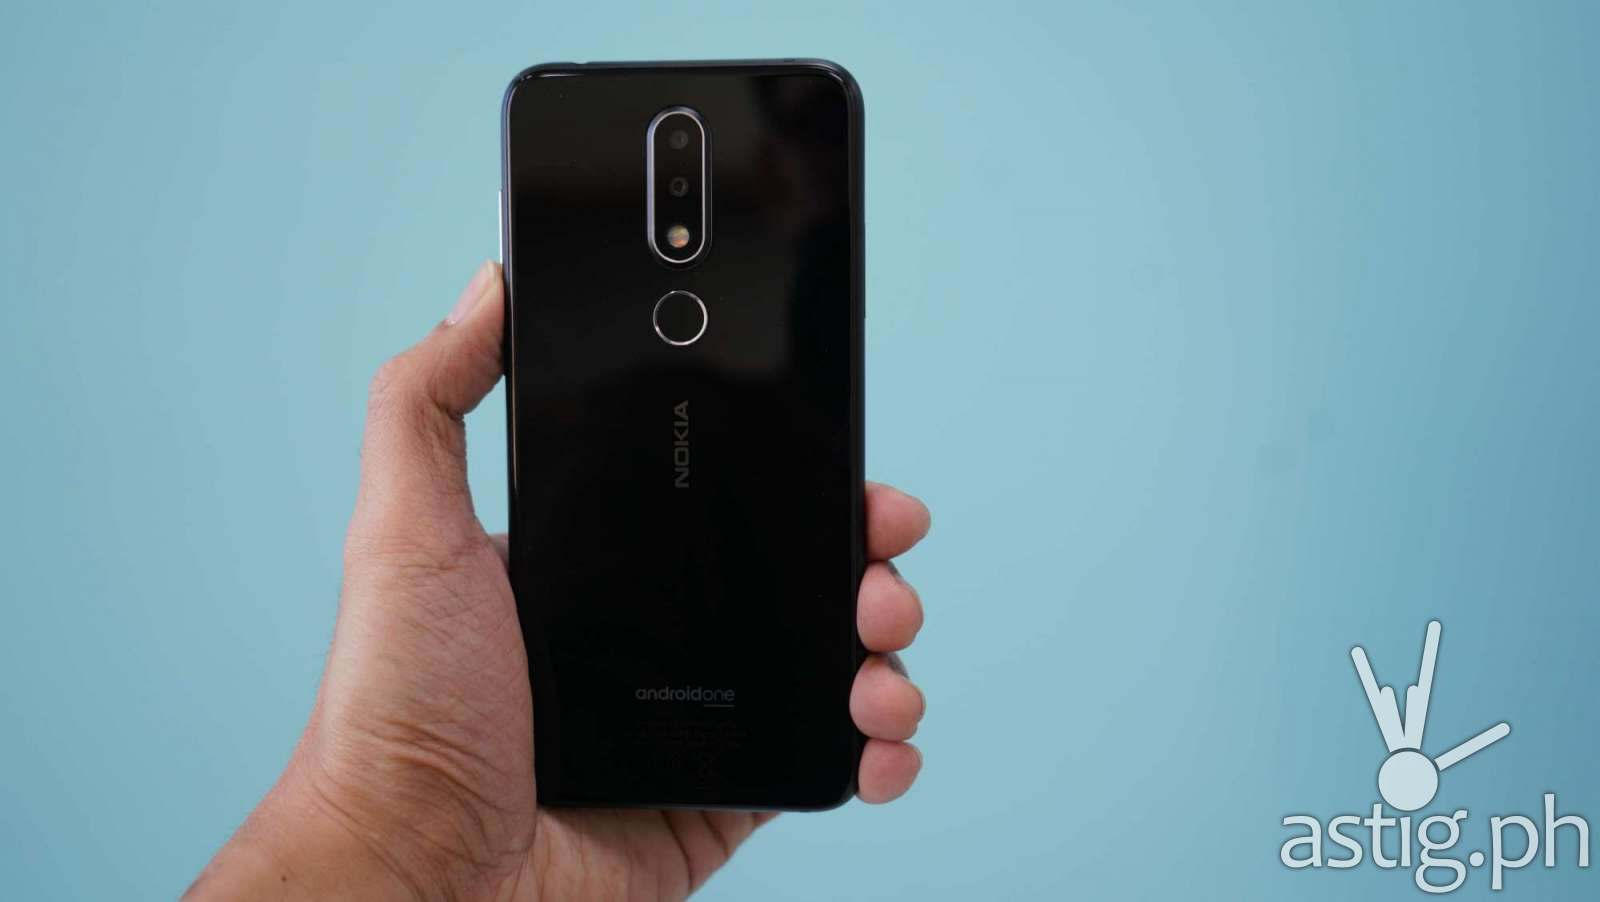 Back handheld - Nokia 6.1 Plus (Philippines)